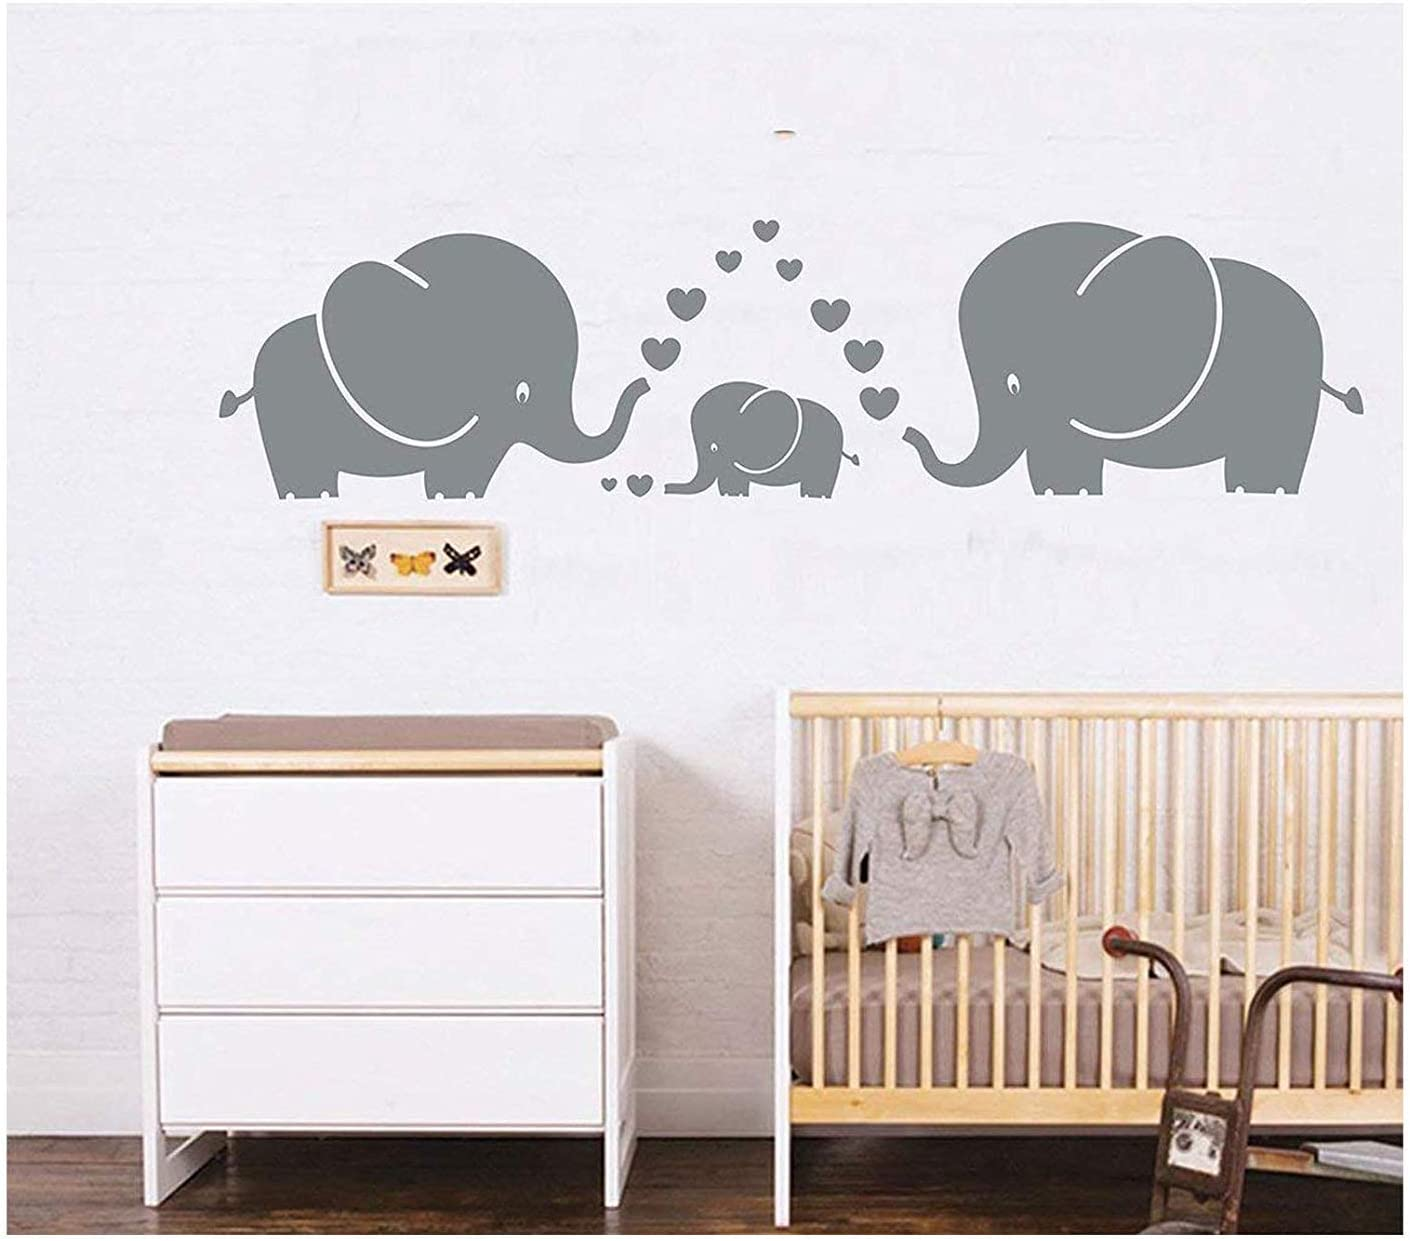 Amazon Com Mafent Tm Three Cute Elephants Parents And Kid Family Wall Decal With Hearts Wall Decals Baby Nursery Decor Kids Room Wall Stickers Grey Home Improvement